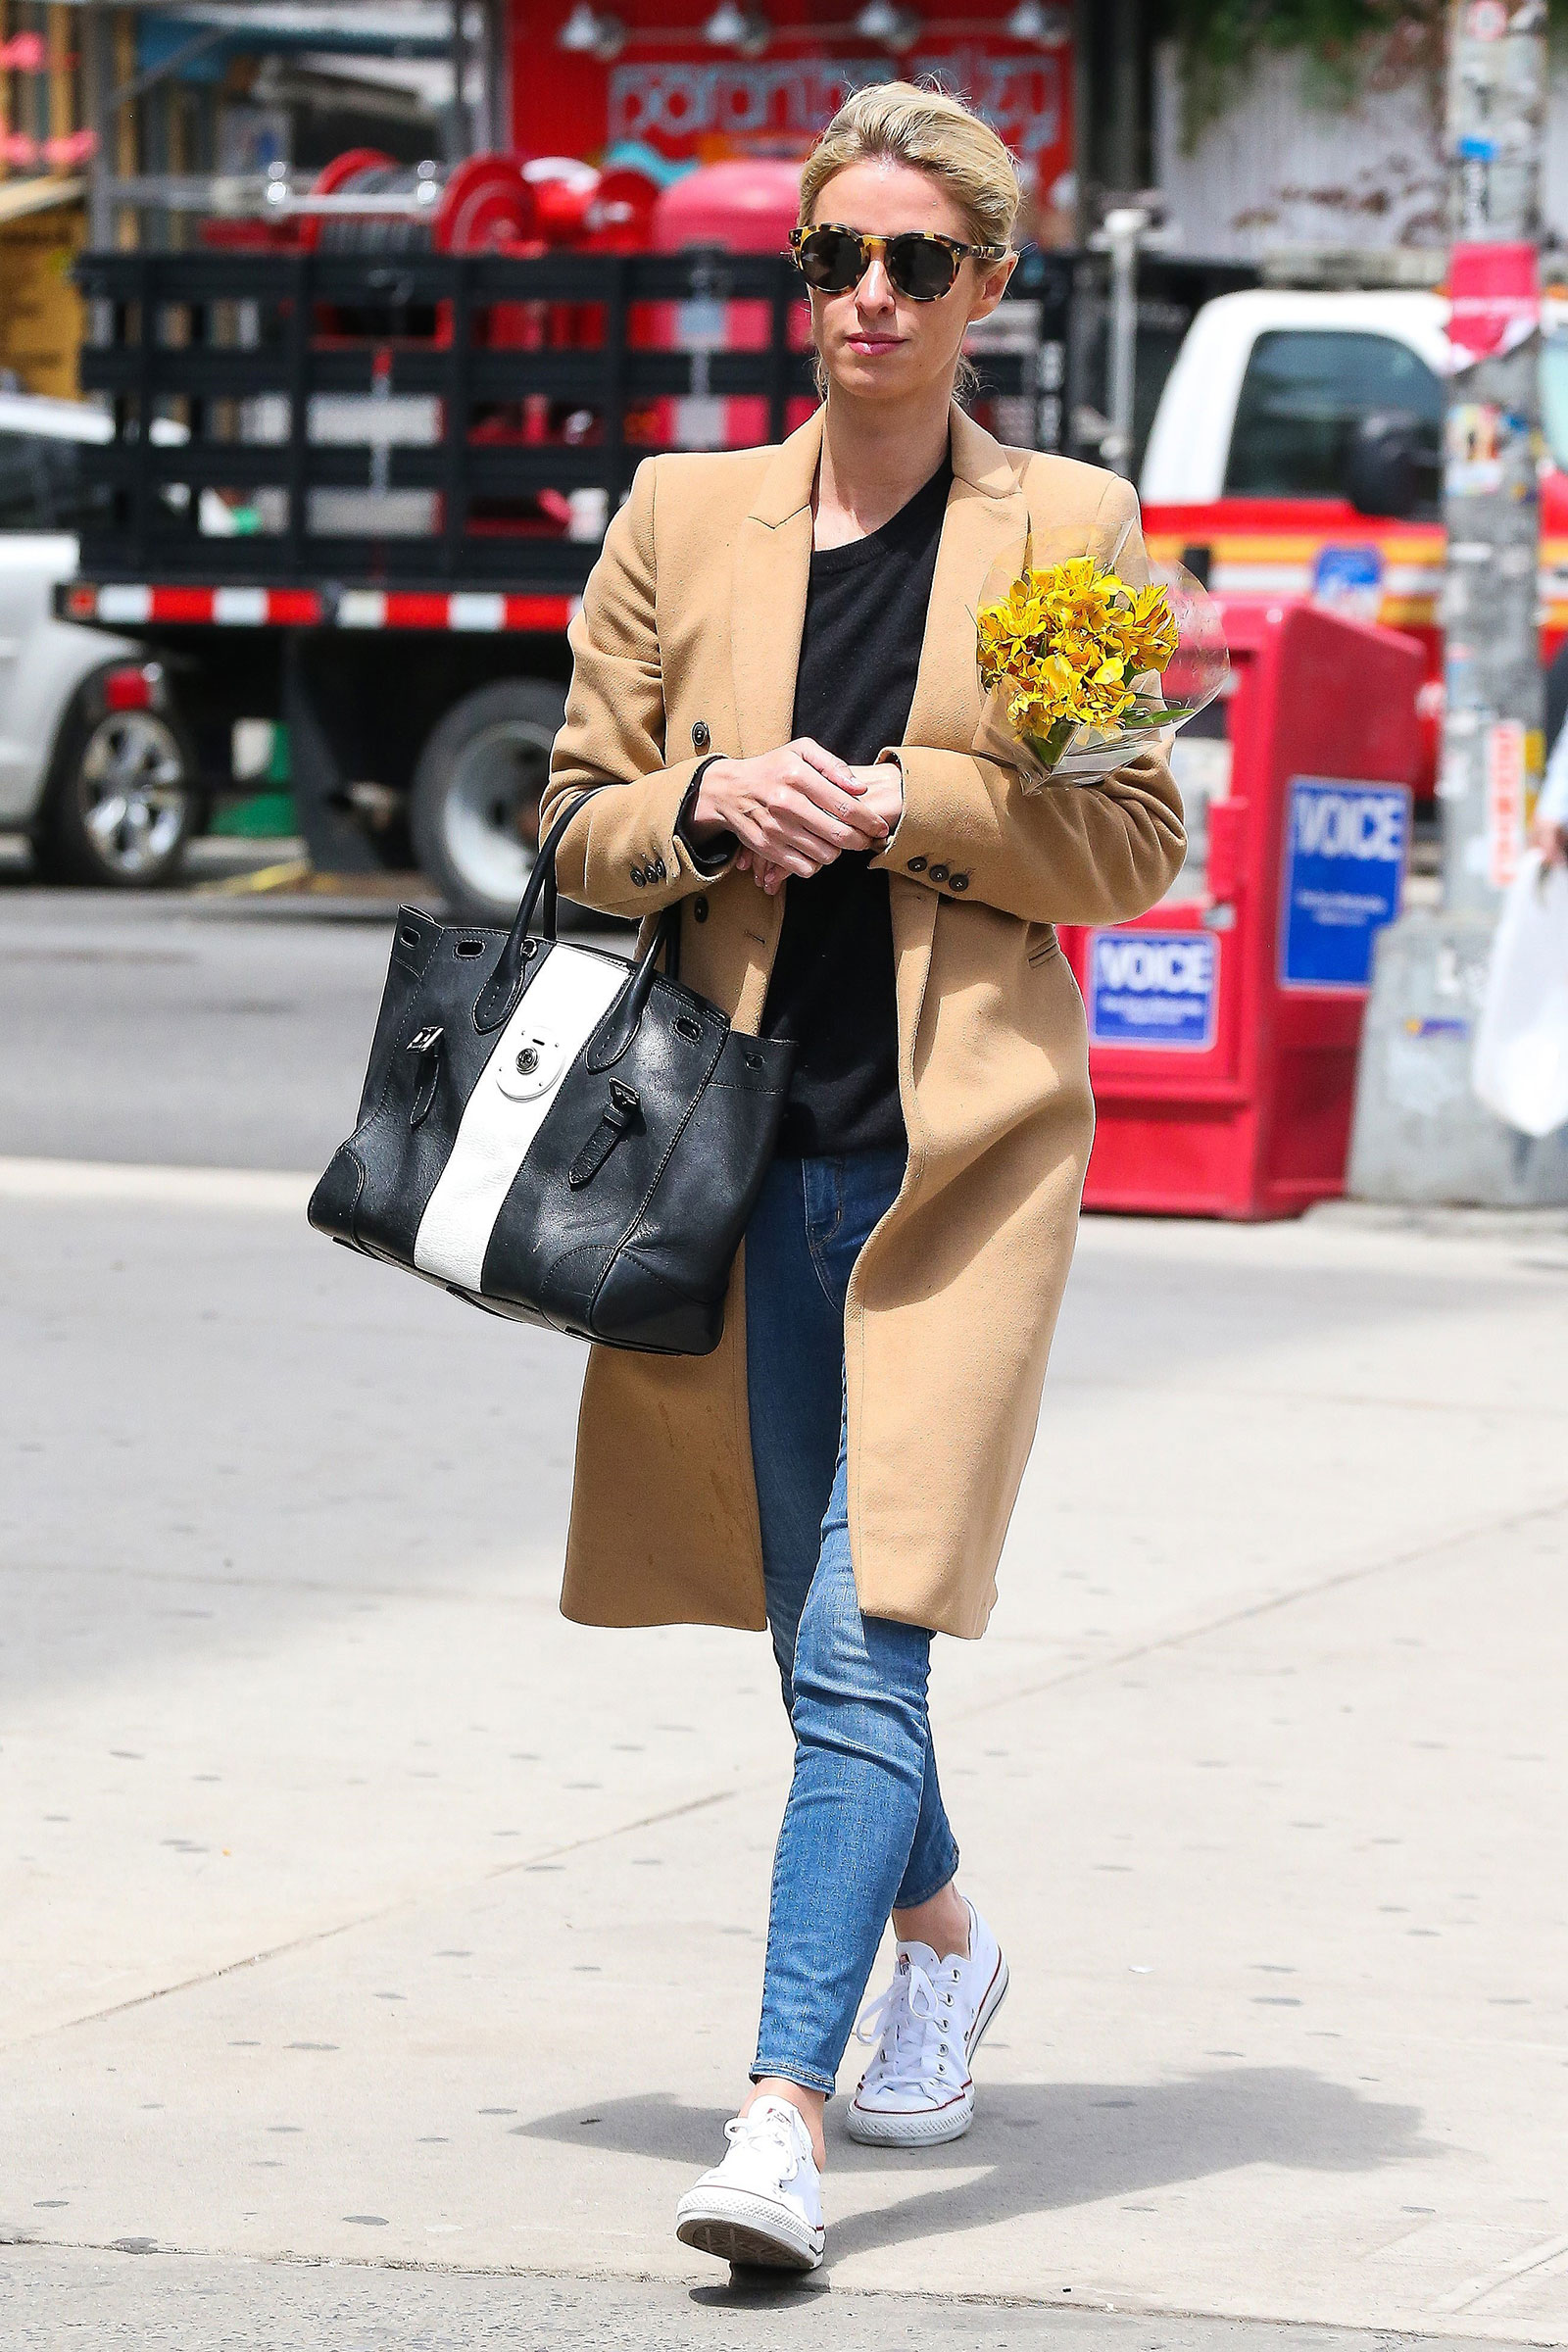 Nicky Hilton wears a camel coat and white Converse while out and about in New York City.